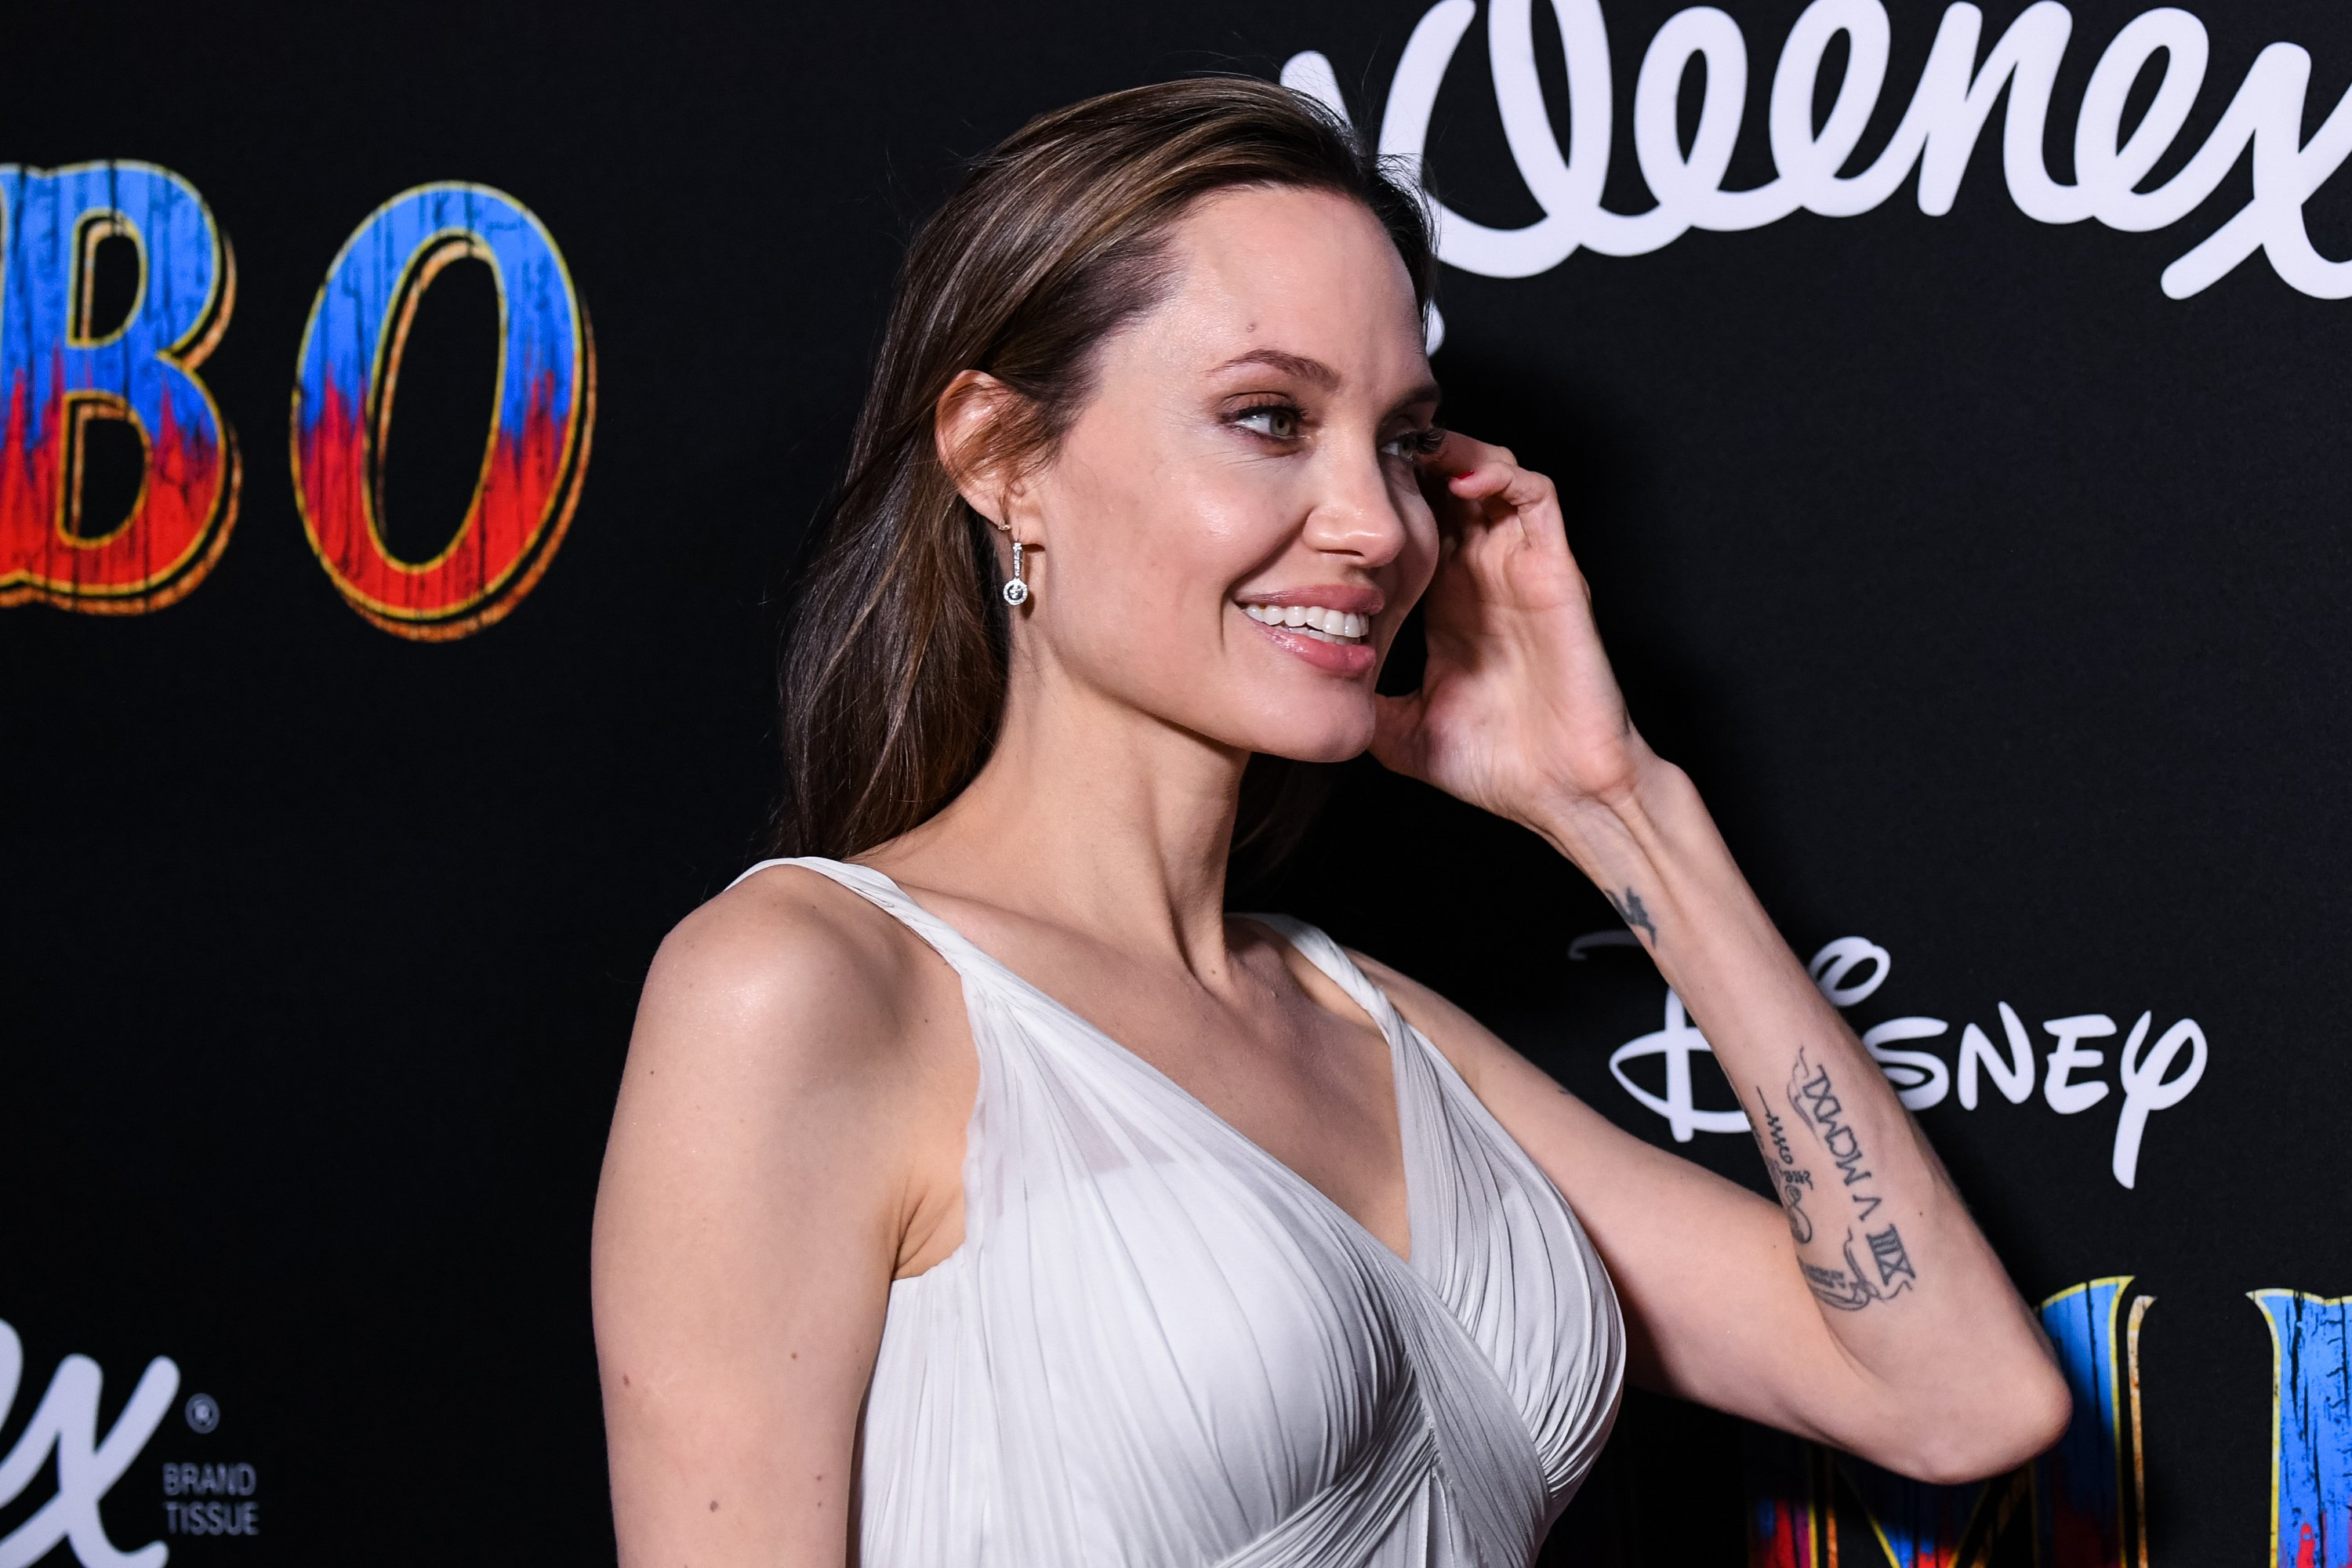 Image Source: Getty Images/Jolie at the Dumbo premiere event